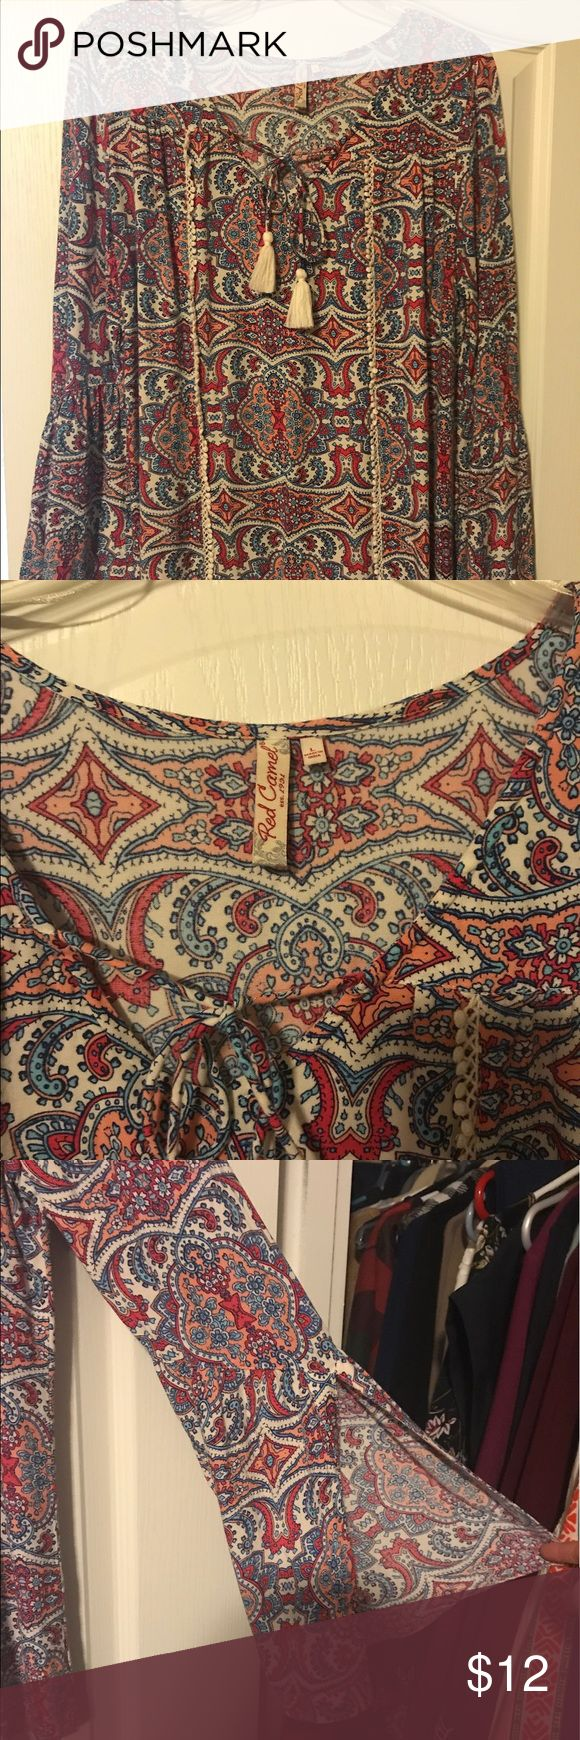 Paisley top with split bell sleeves Cute shirt with bright design. It has a tassel tie at the neck and bell sleeves that are split halfway up. Worn a couple of times, great condition! Red Camel Tops Tees - Long Sleeve